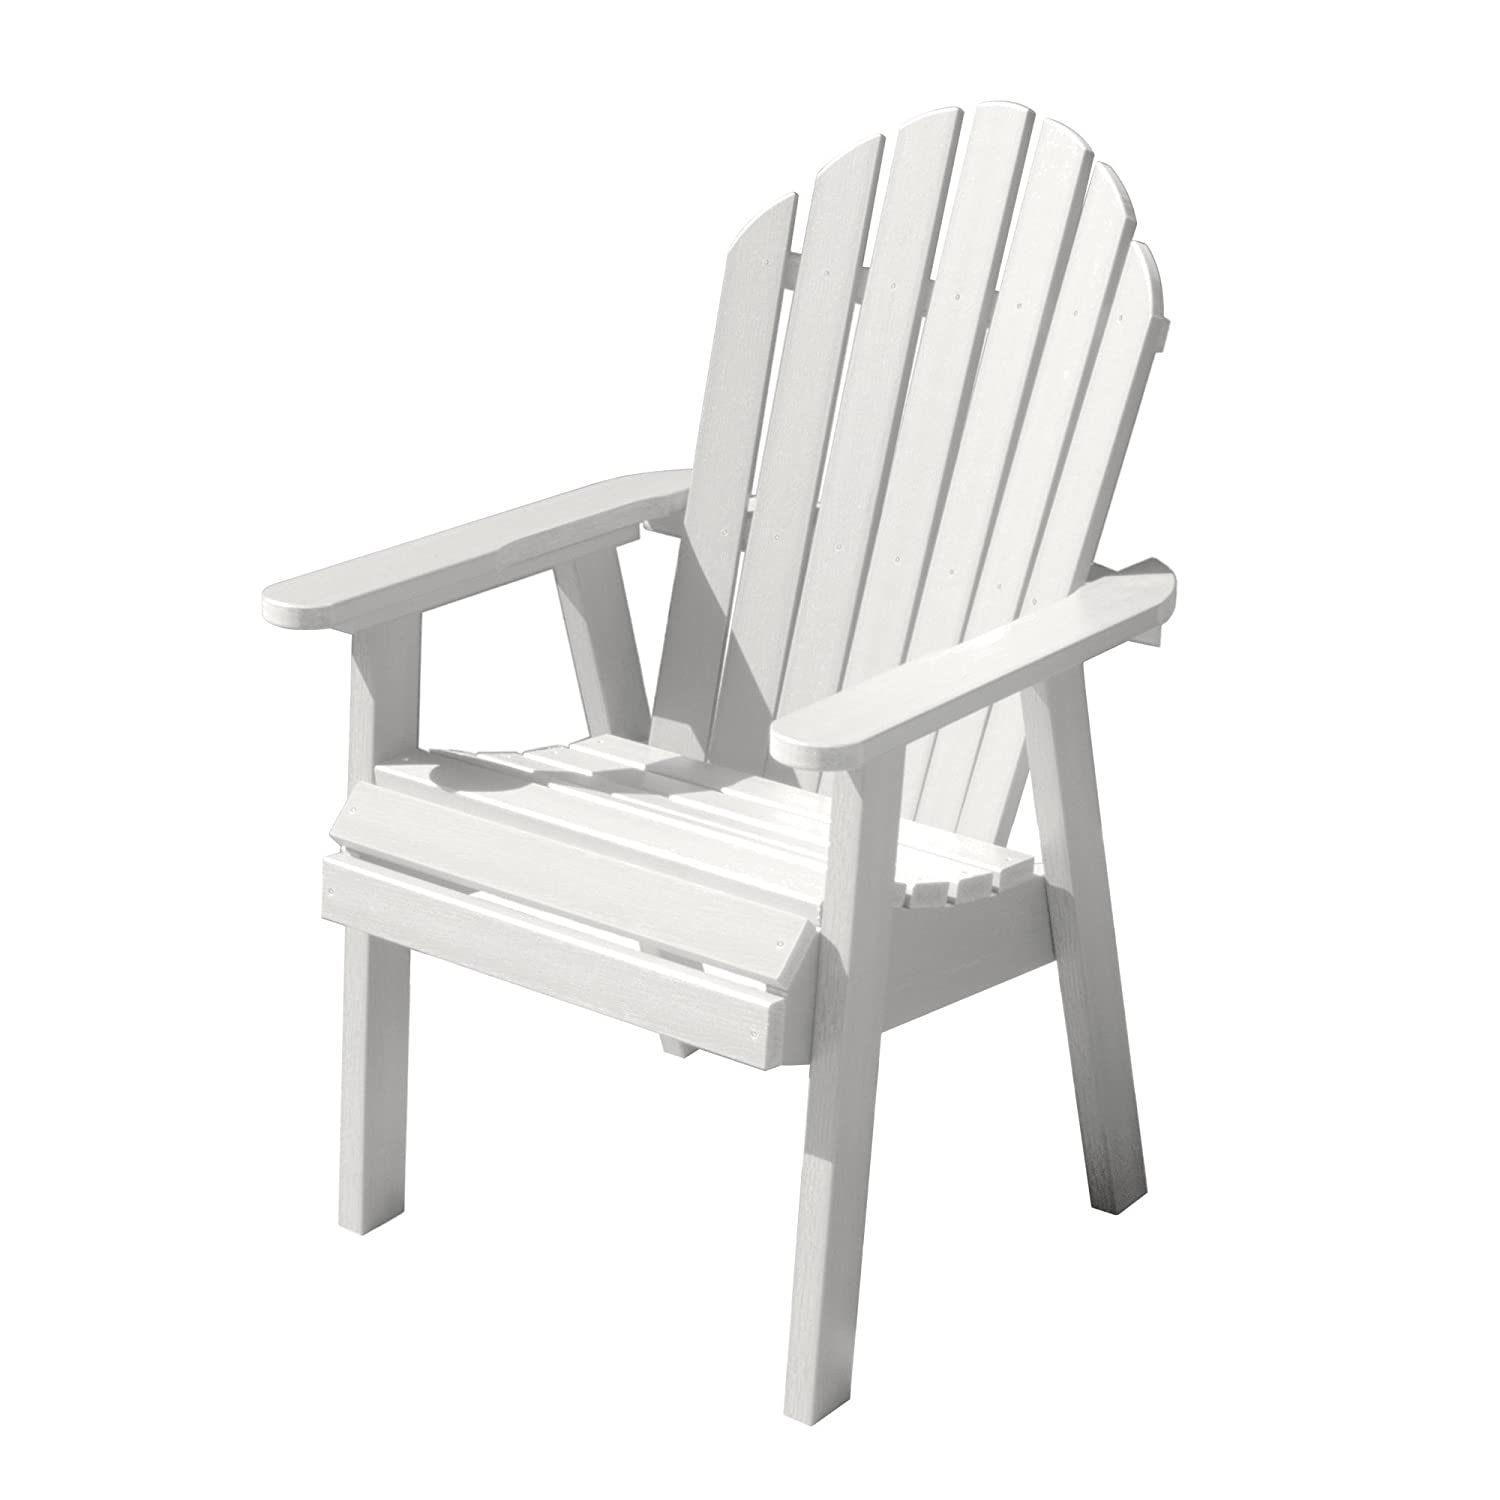 Deckchair Jetem Premium: customer reviews 35